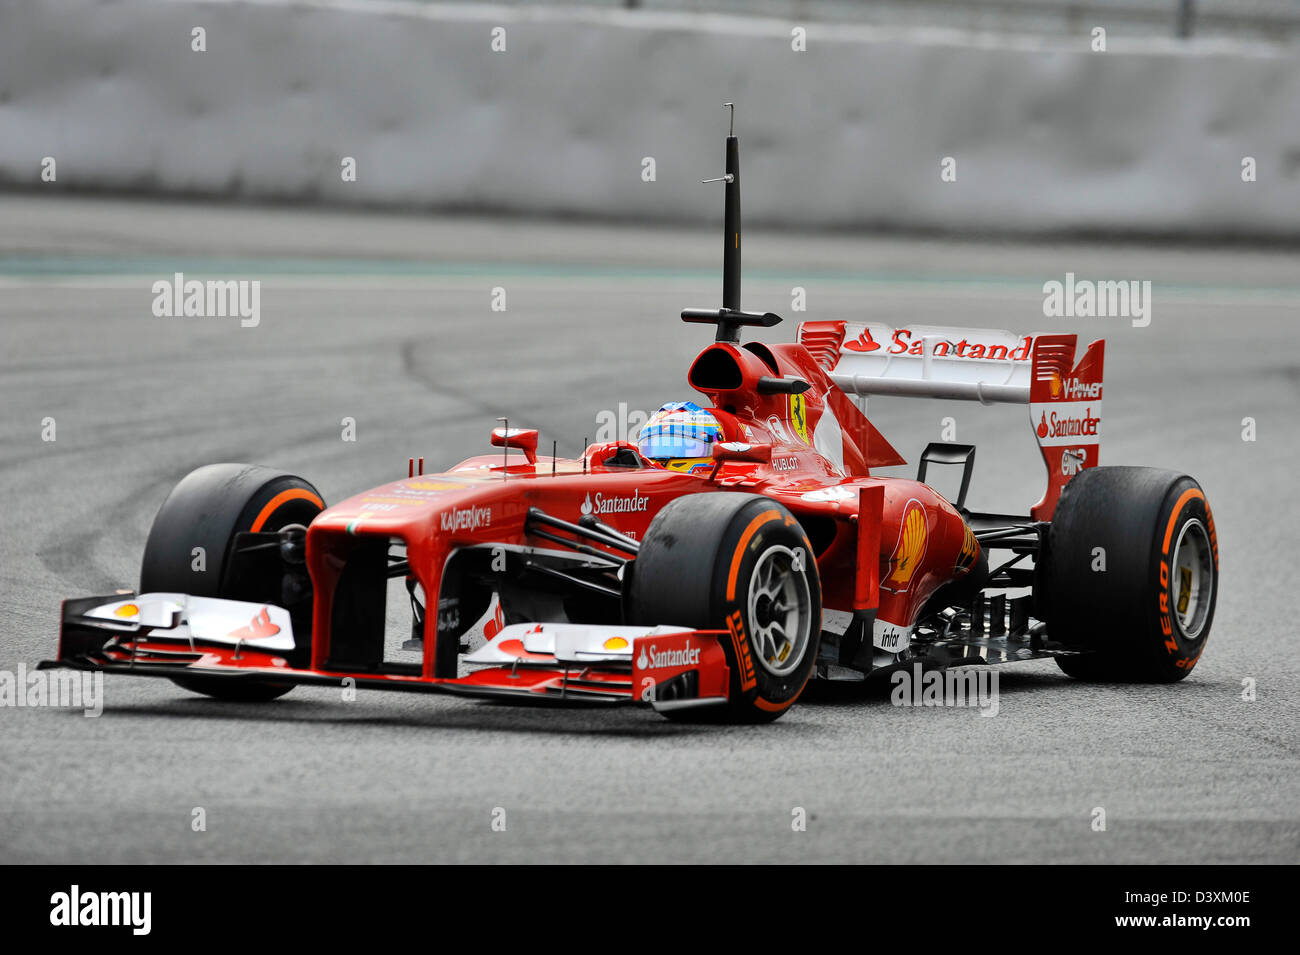 Fernando Alonso (ESP), Ferrari F138 during Formula One tests on Circuit de Catalunya racetrack near Barcelona, Spain - Stock Image